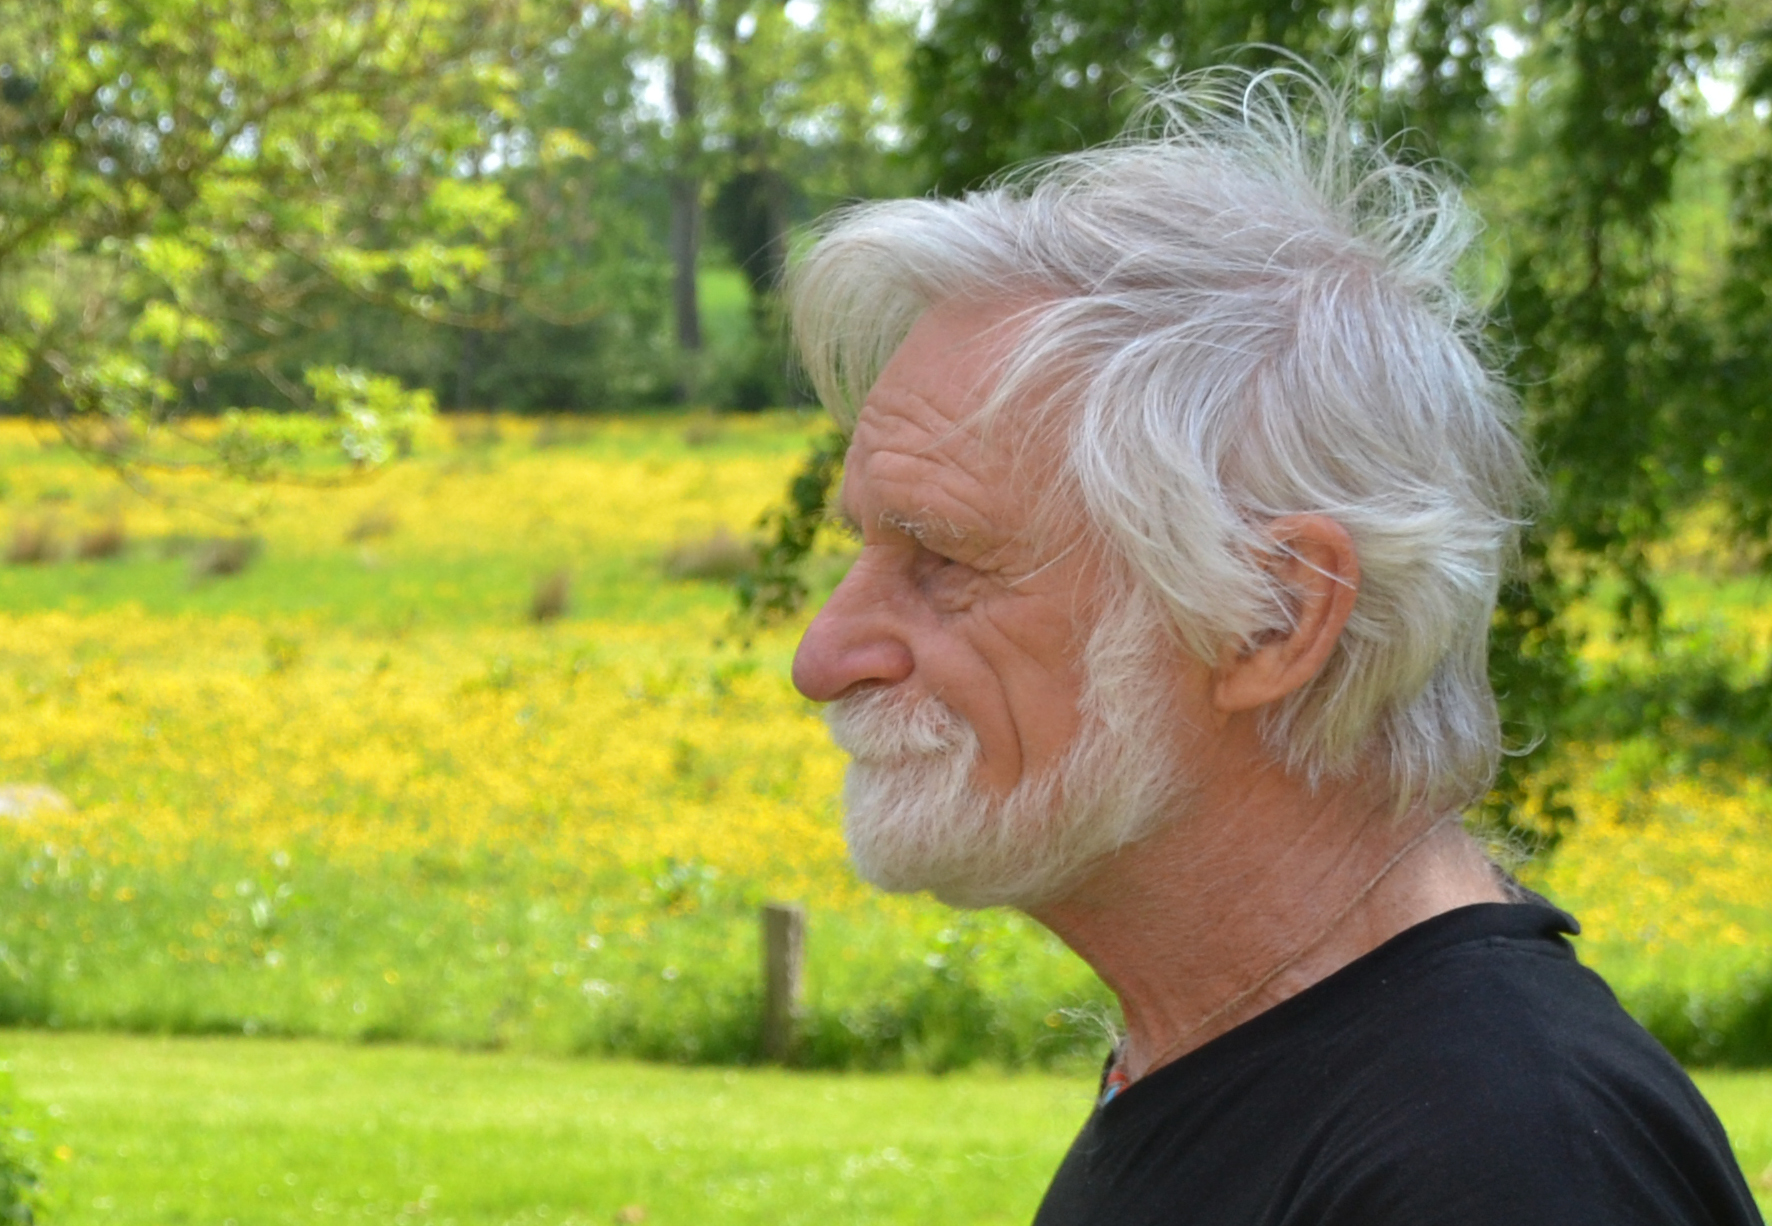 Jean Bourgeois in the park at Moesgaard Museum. Photo: Hanne Christensen, 2013